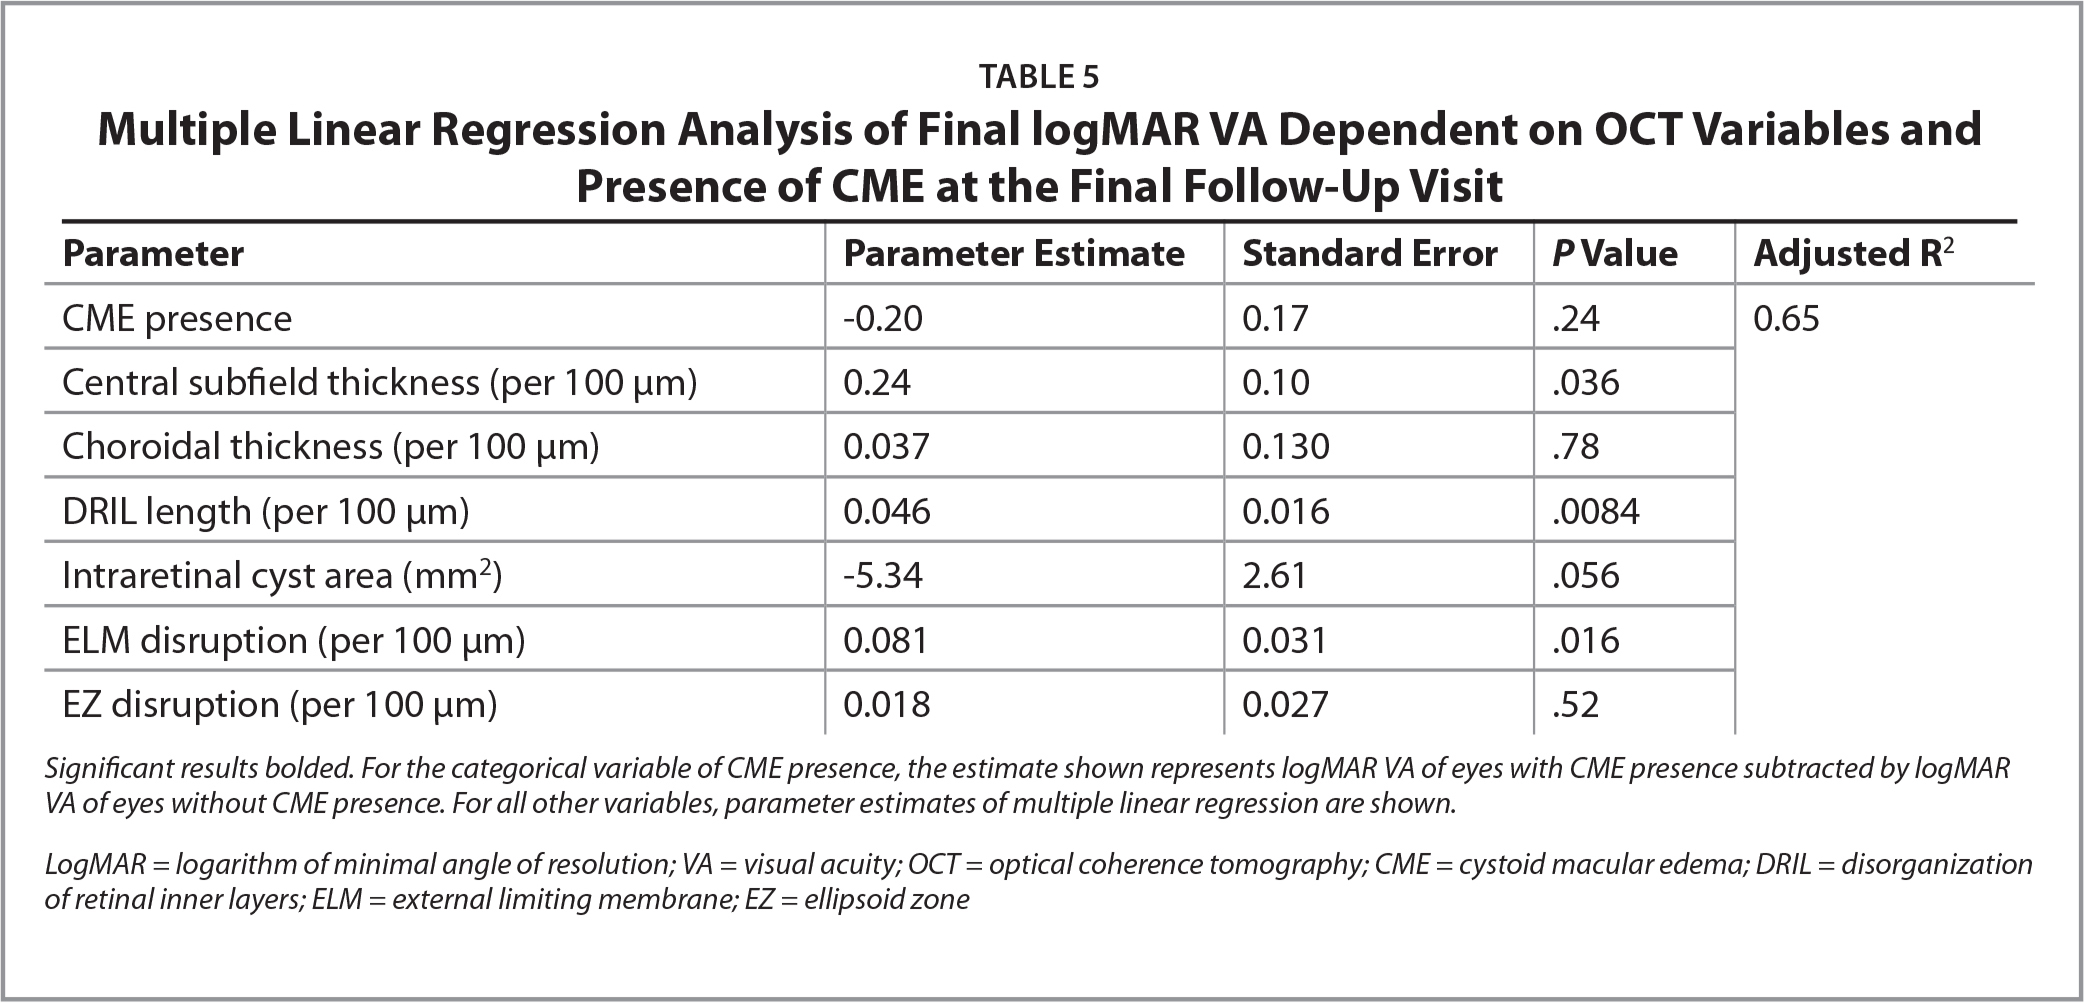 Multiple Linear Regression Analysis of Final logMAR VA Dependent on OCT Variables and Presence of CME at the Final Follow-Up Visit